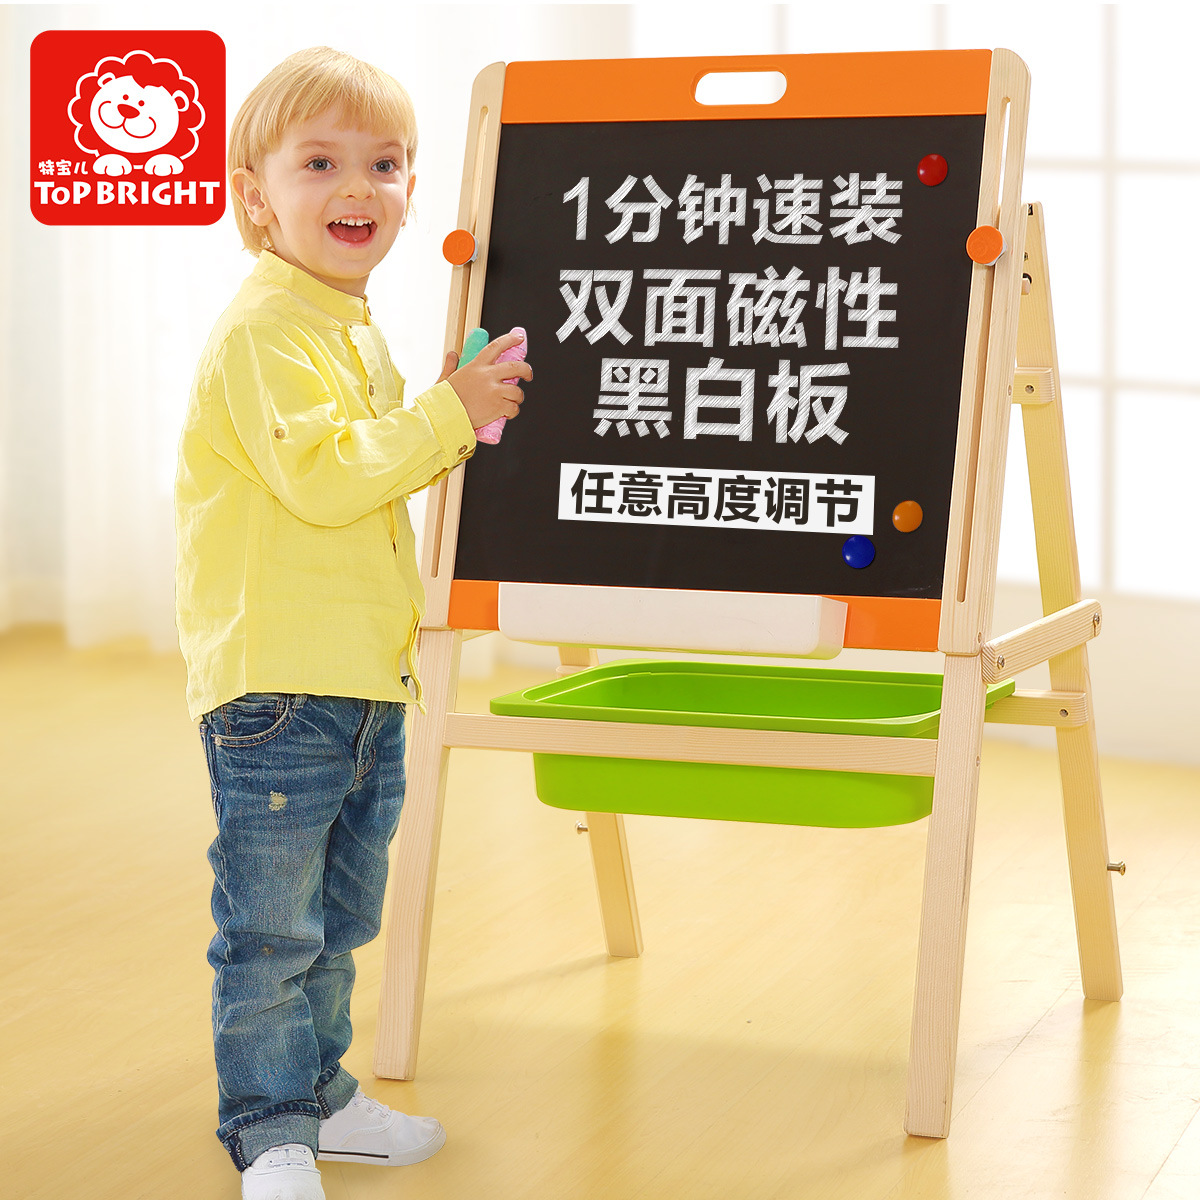 TOPBRIGHT Solid Wood CHILDREN'S Drawing Board Double-Sided Magnetic Small Blackboard Braced Easel Adjustable Large Size Writing